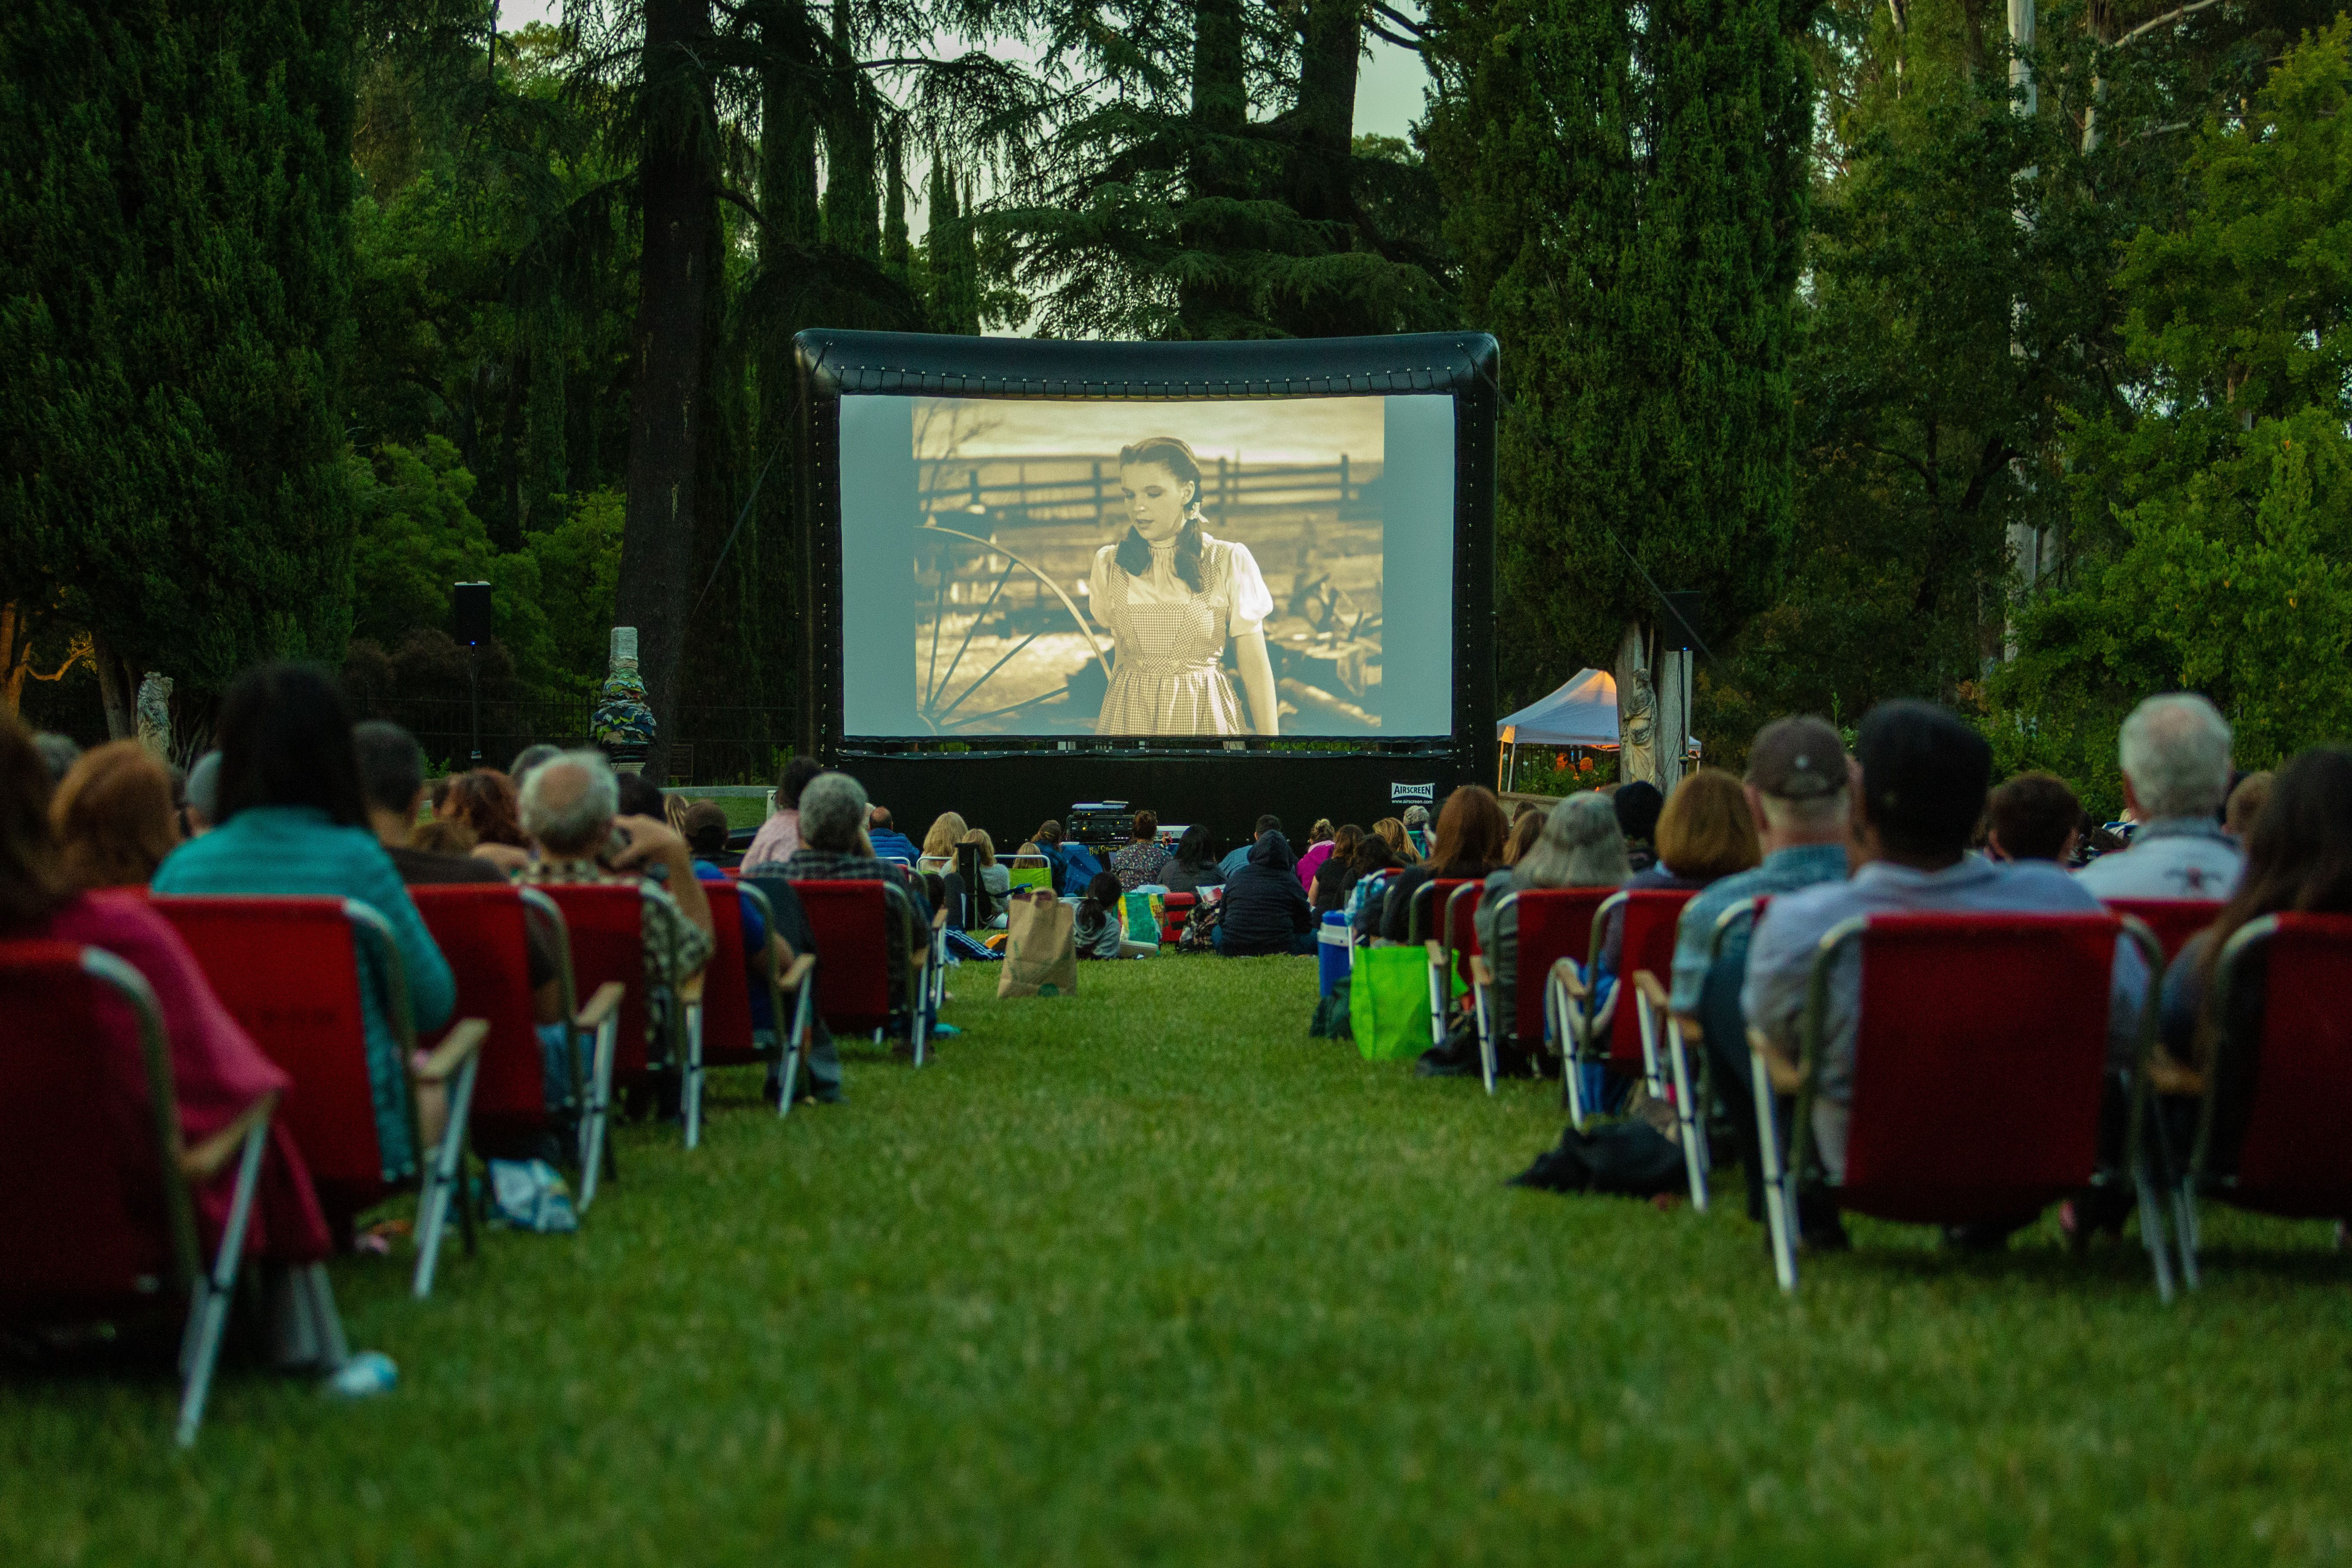 Innovative parks and recreation ideas include an outdoor movie night for the community hosted by Fun Flicks